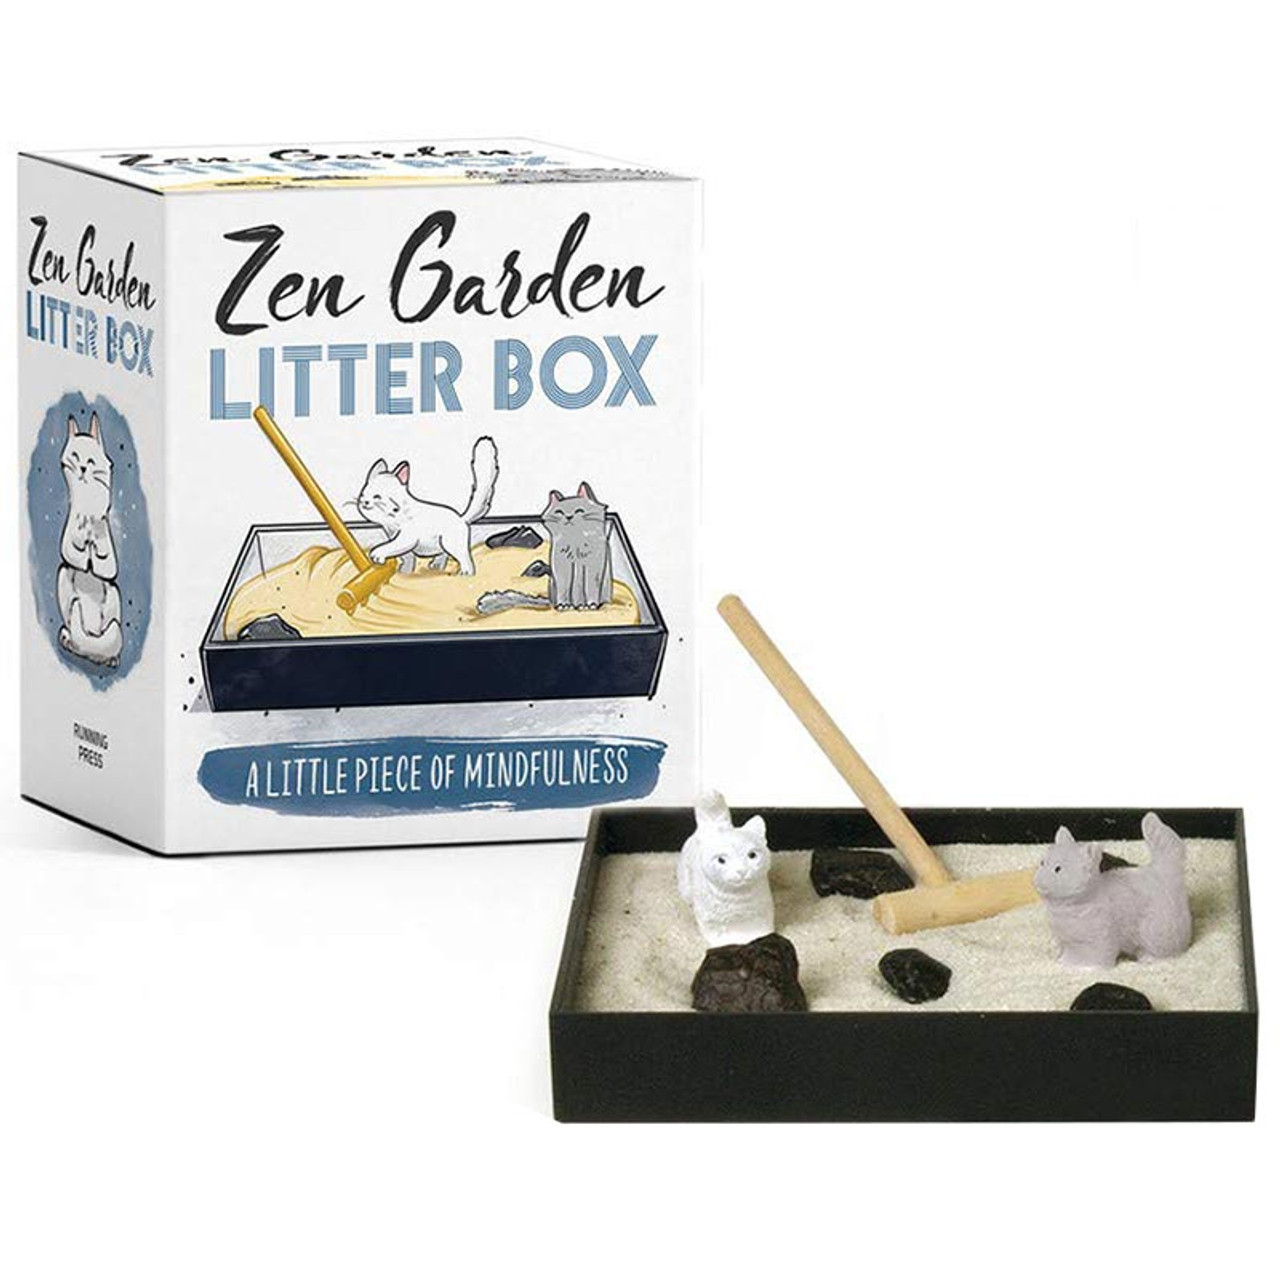 Zen Garden Litter Box Gift For Cat Ladies